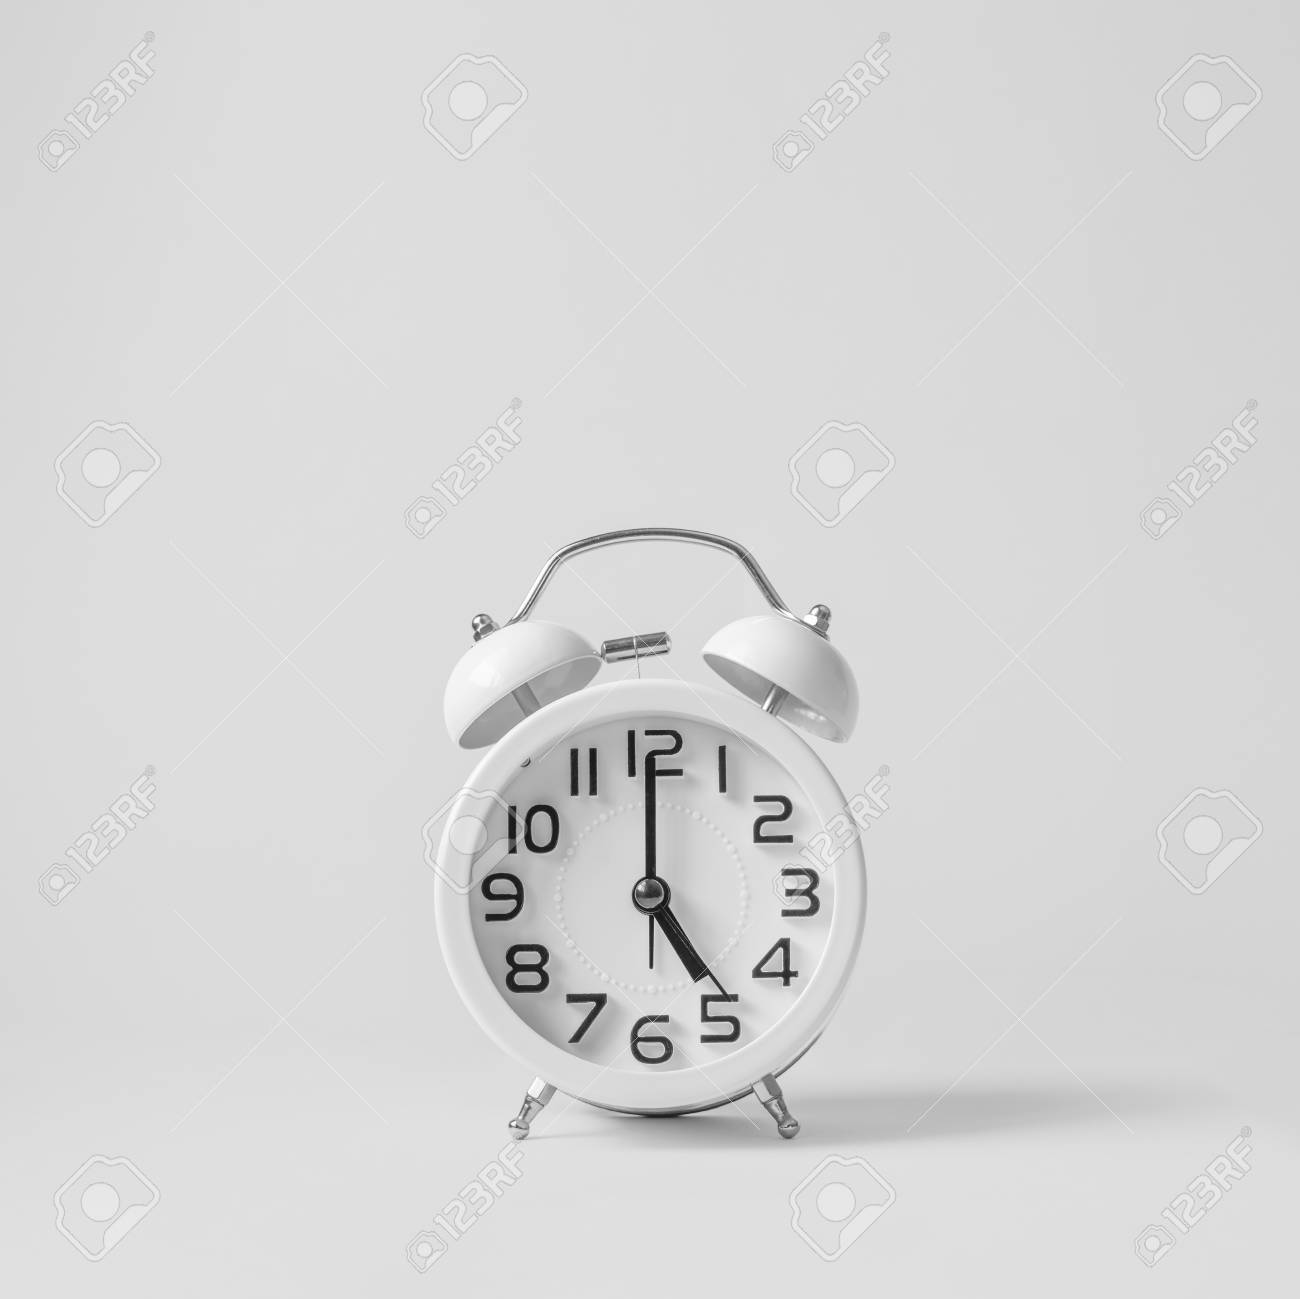 White vintage alarm clock on white background. Concept get off work at five. - 122874643